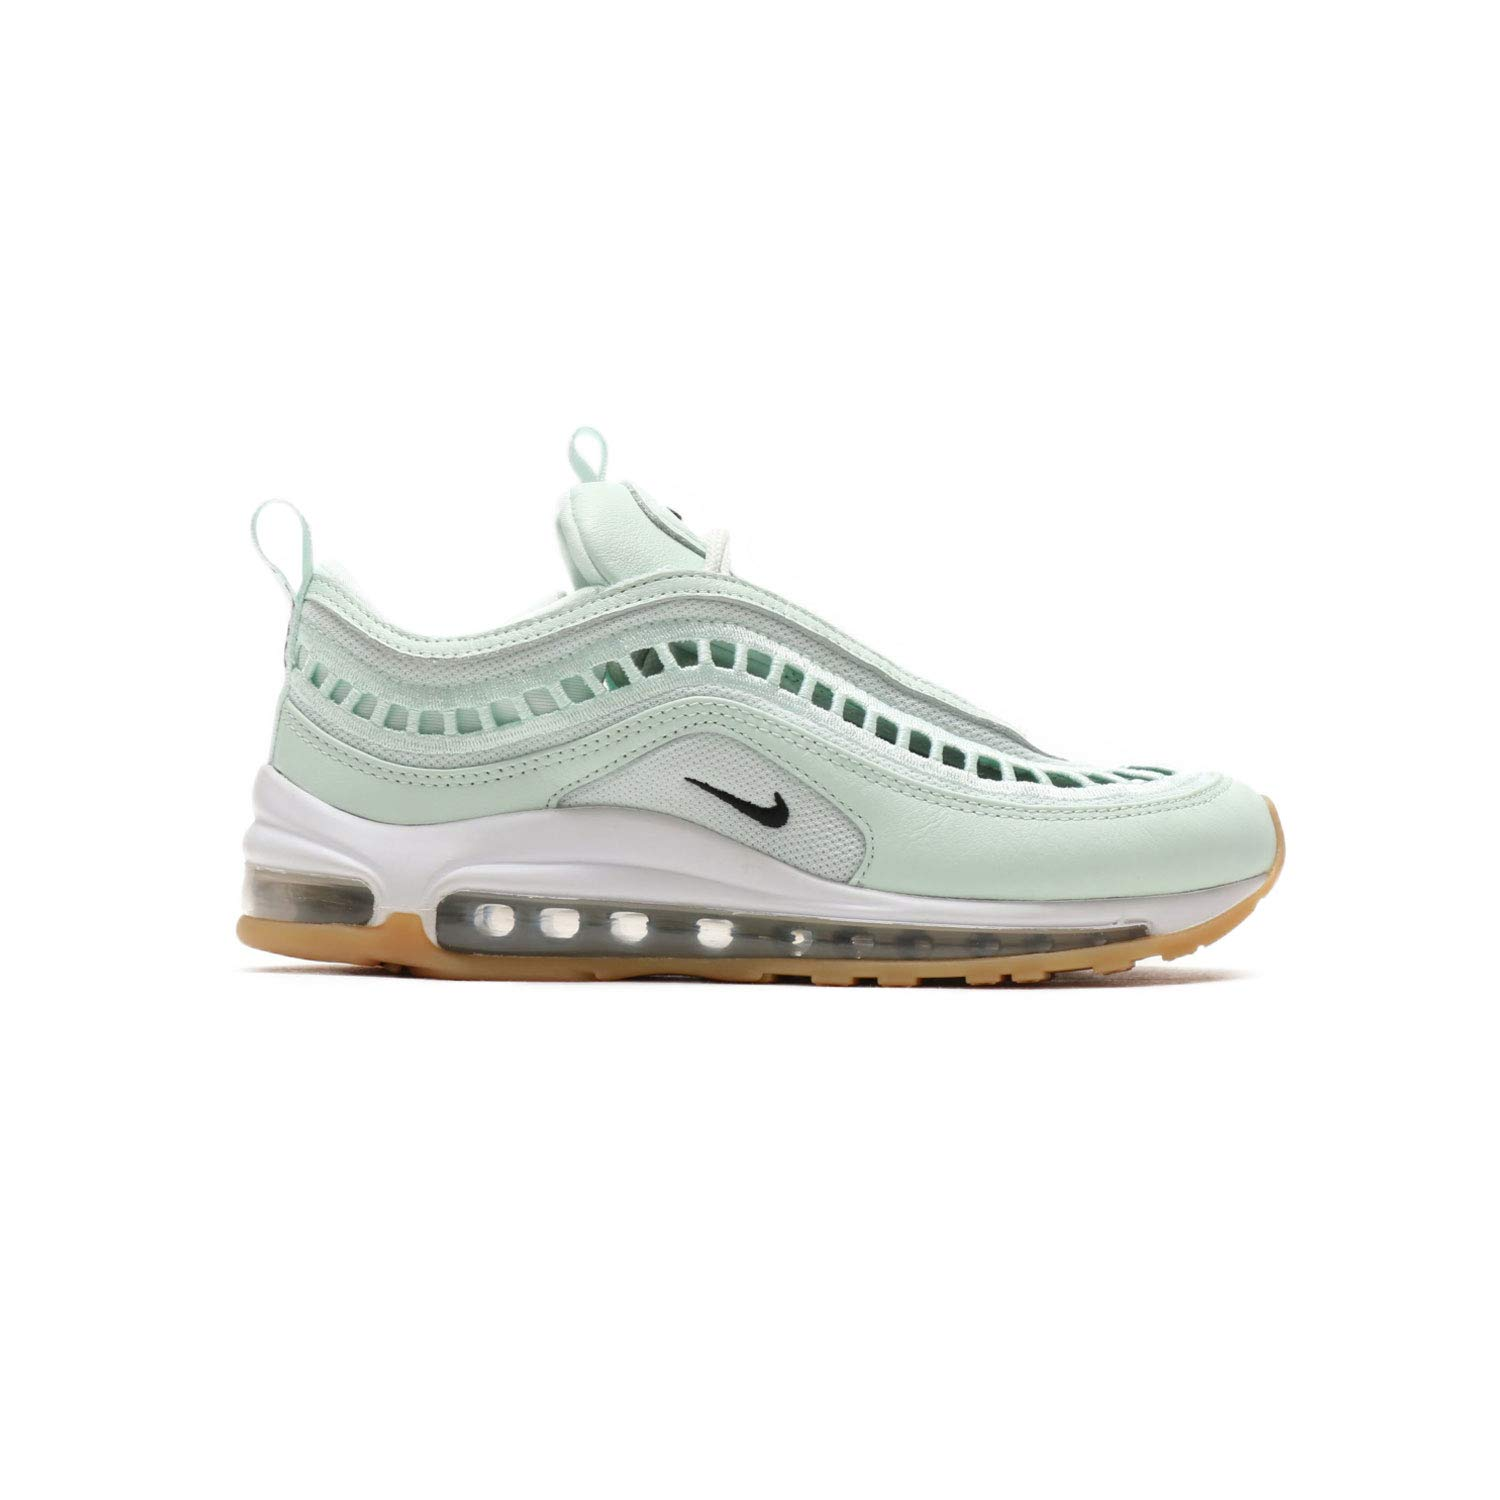 96c13f6144 Galleon - NIKE Air Max 97 Ultra '17 Barely Green/Black-Gum Yellow (Womens)  (8.5 B(M) US)